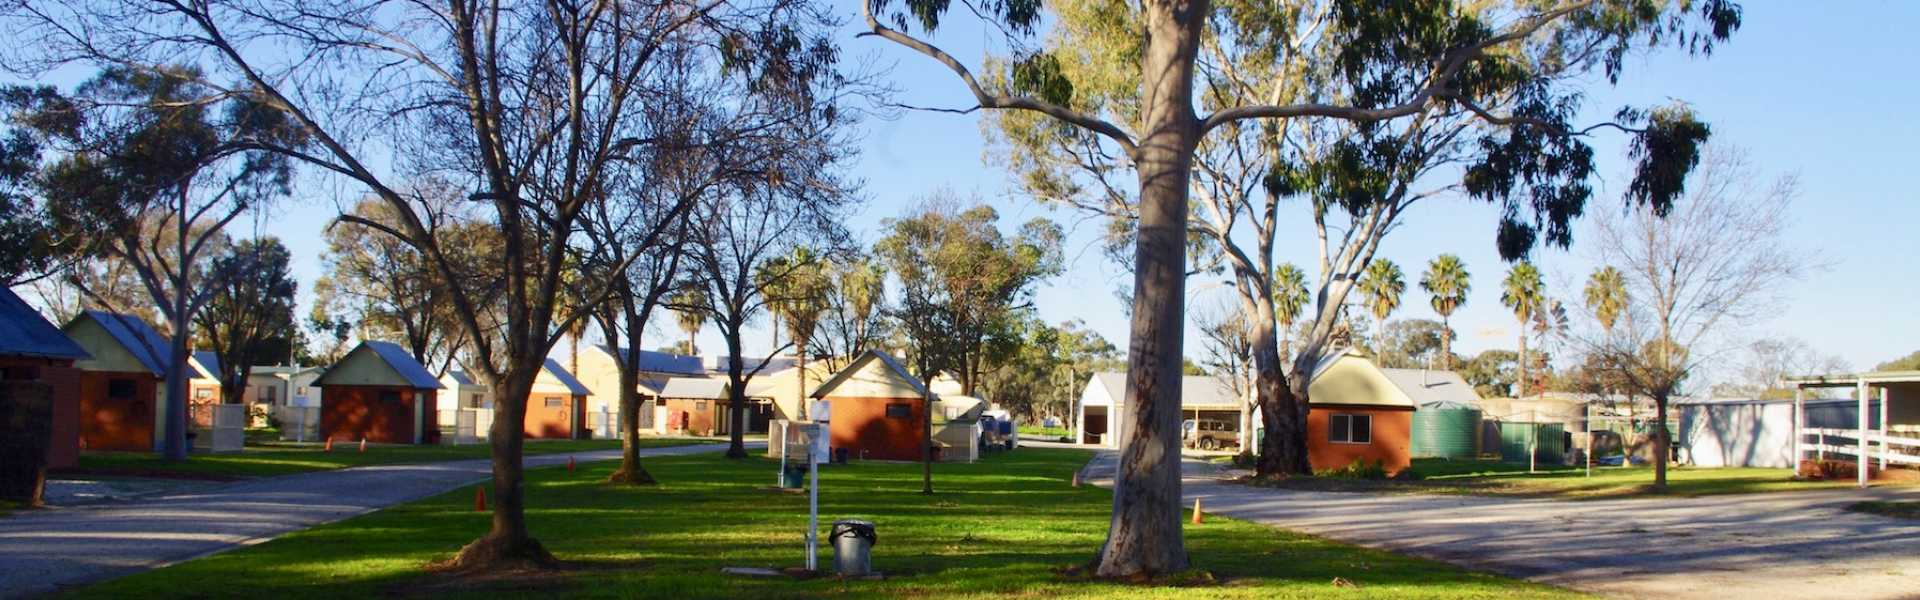 Kui Parks, Deniliquin, Pioneer Tourist Park, Ensuite Sites